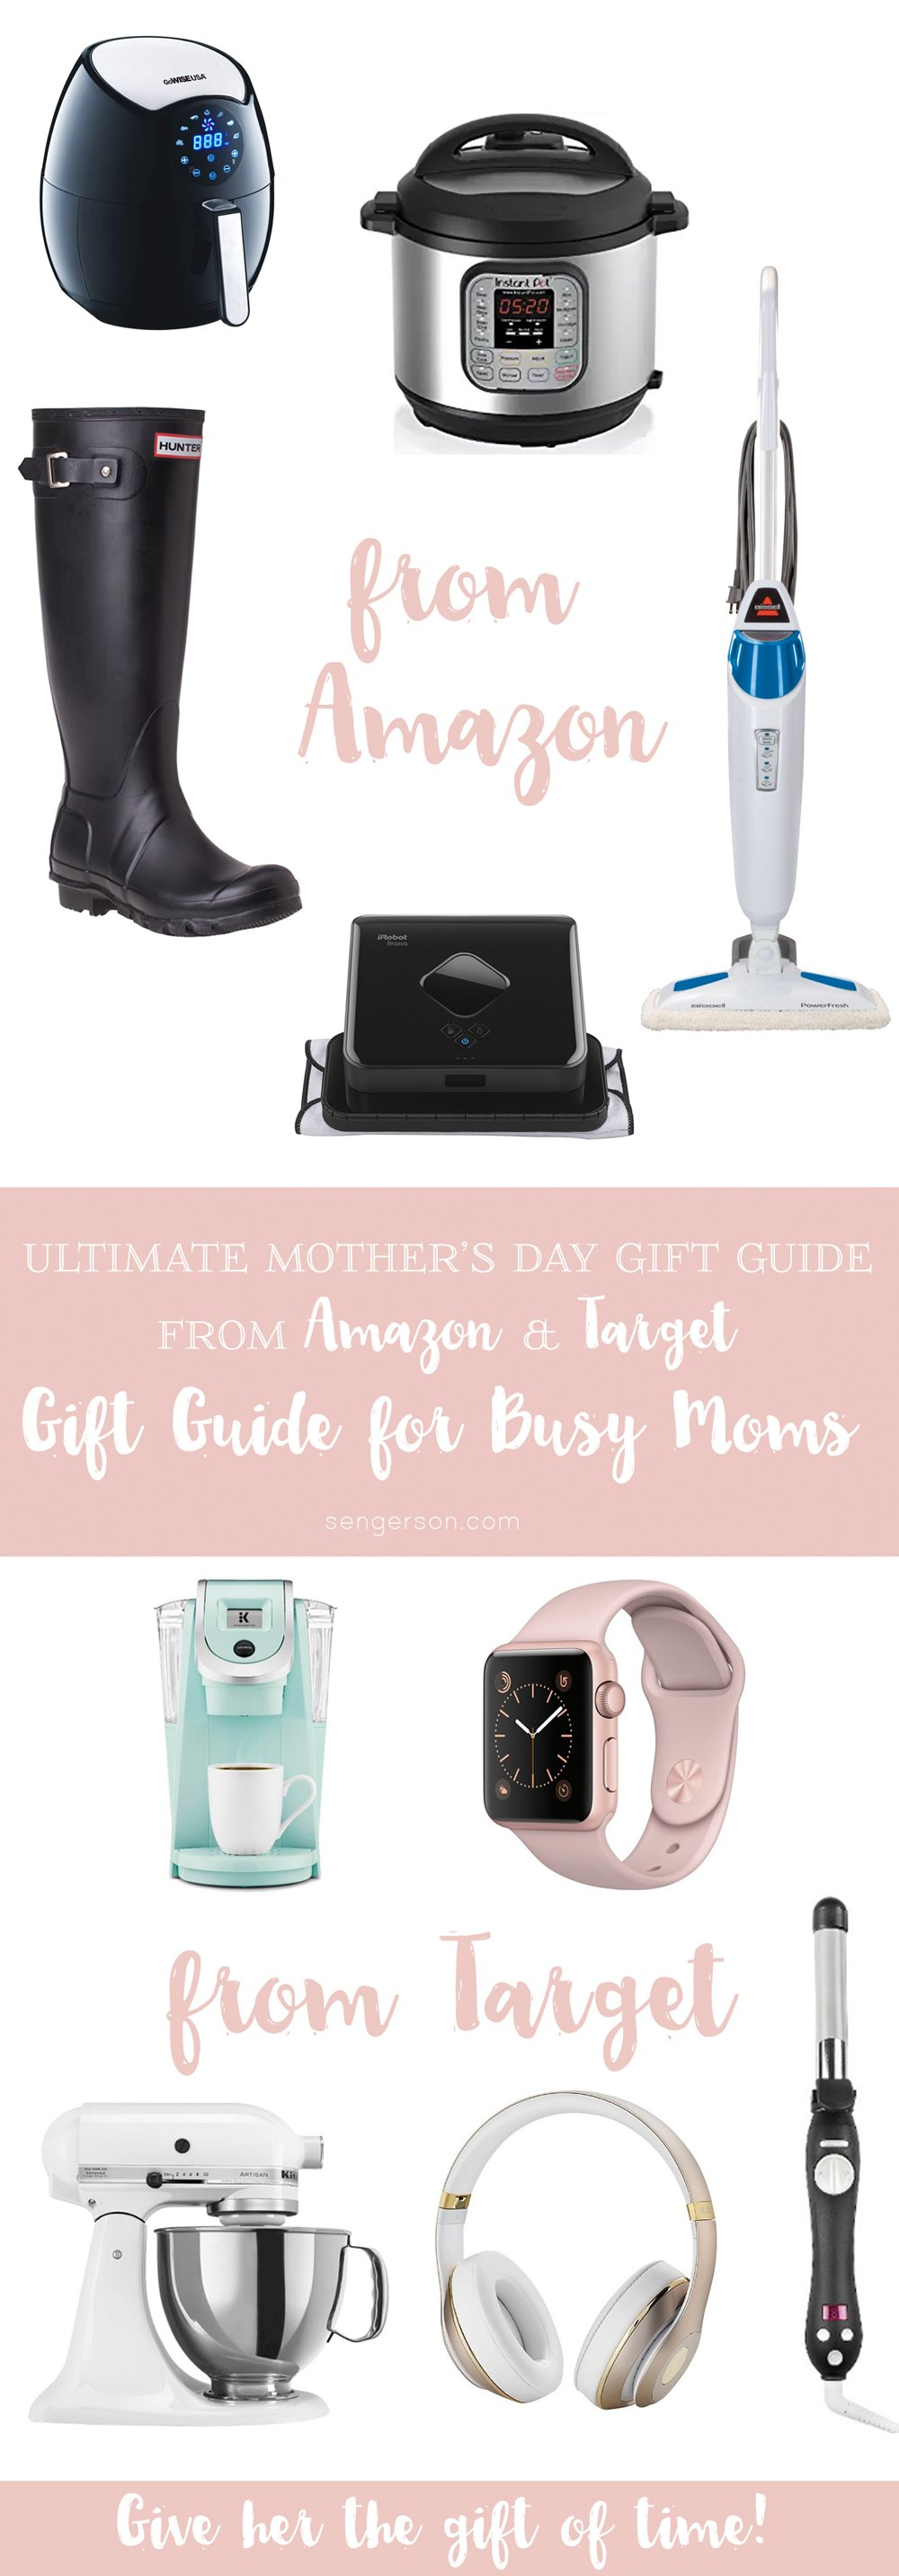 This is the ultimate gift guide for the busy working mom for Mother's Day. This Mother's Day Gift Guide provides the gift of a little extra time with time-saving presents that make every day a little easier. These are thoughtful gifts for mom!